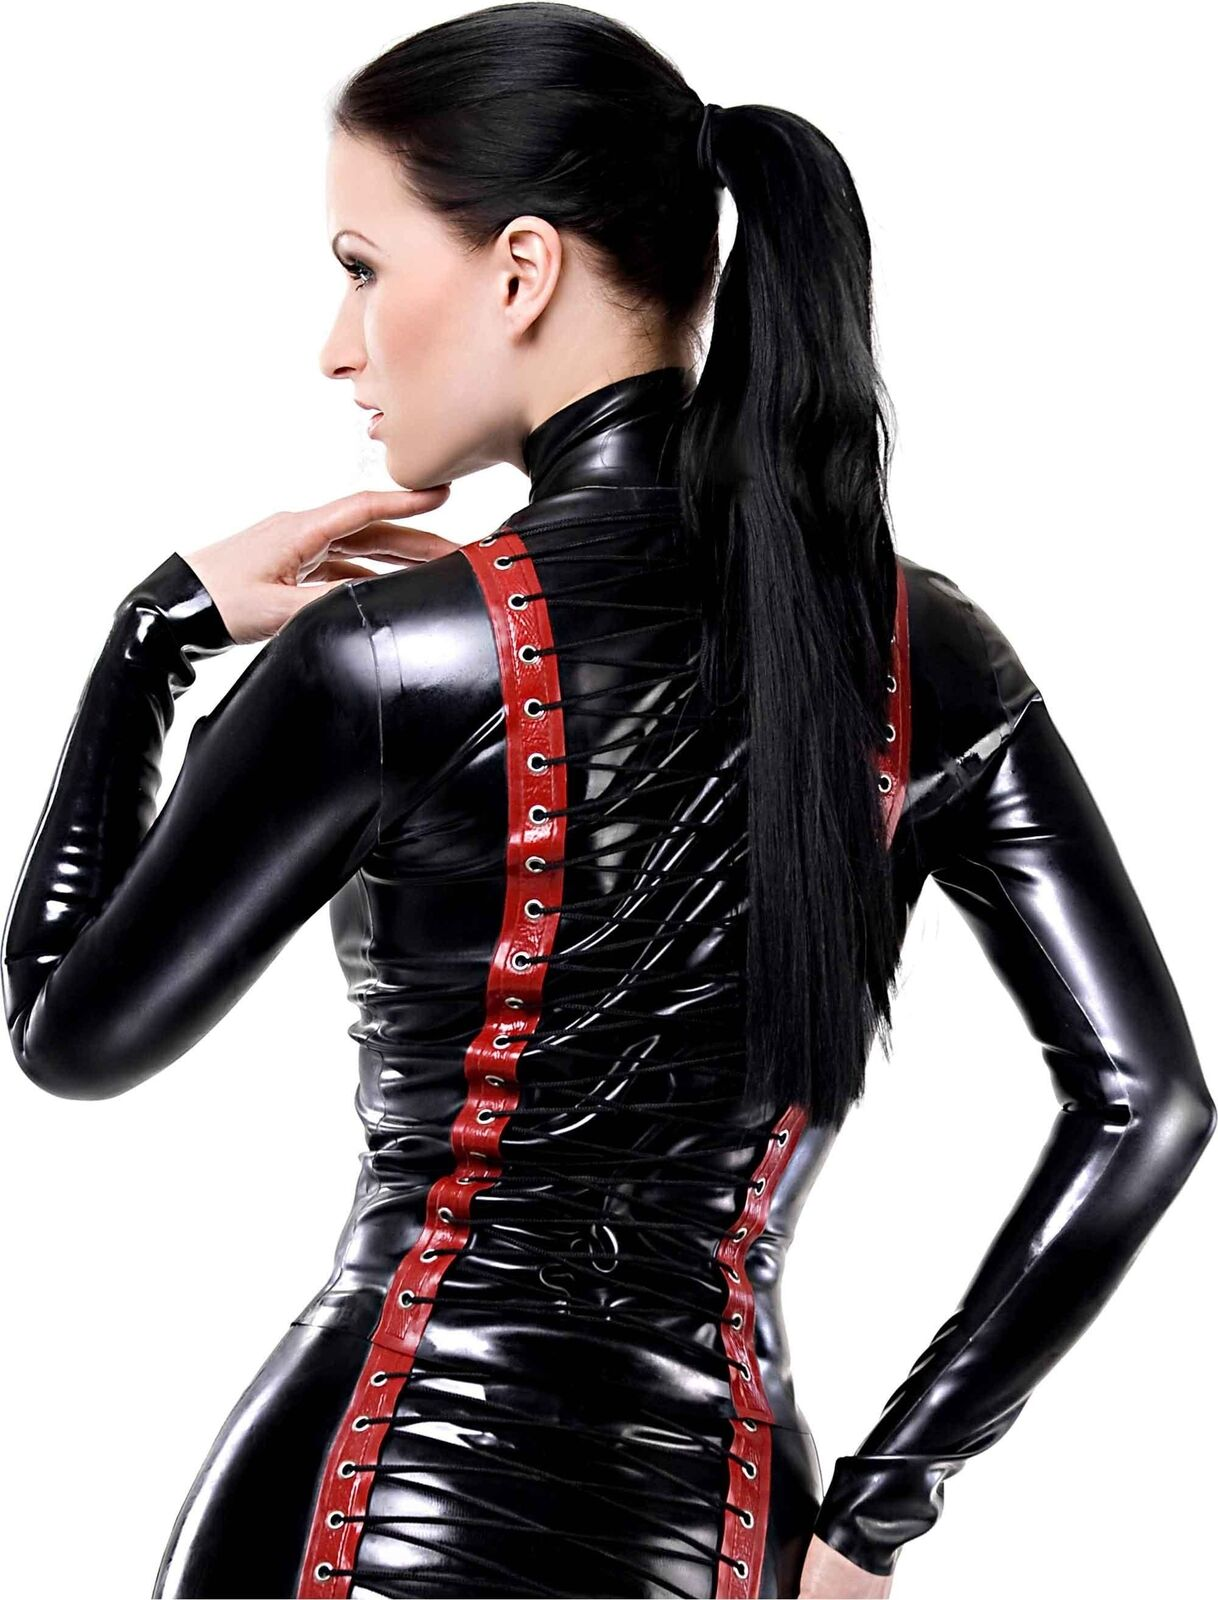 Westward Bound X-Treme Latex Top schwarz with rot Trim